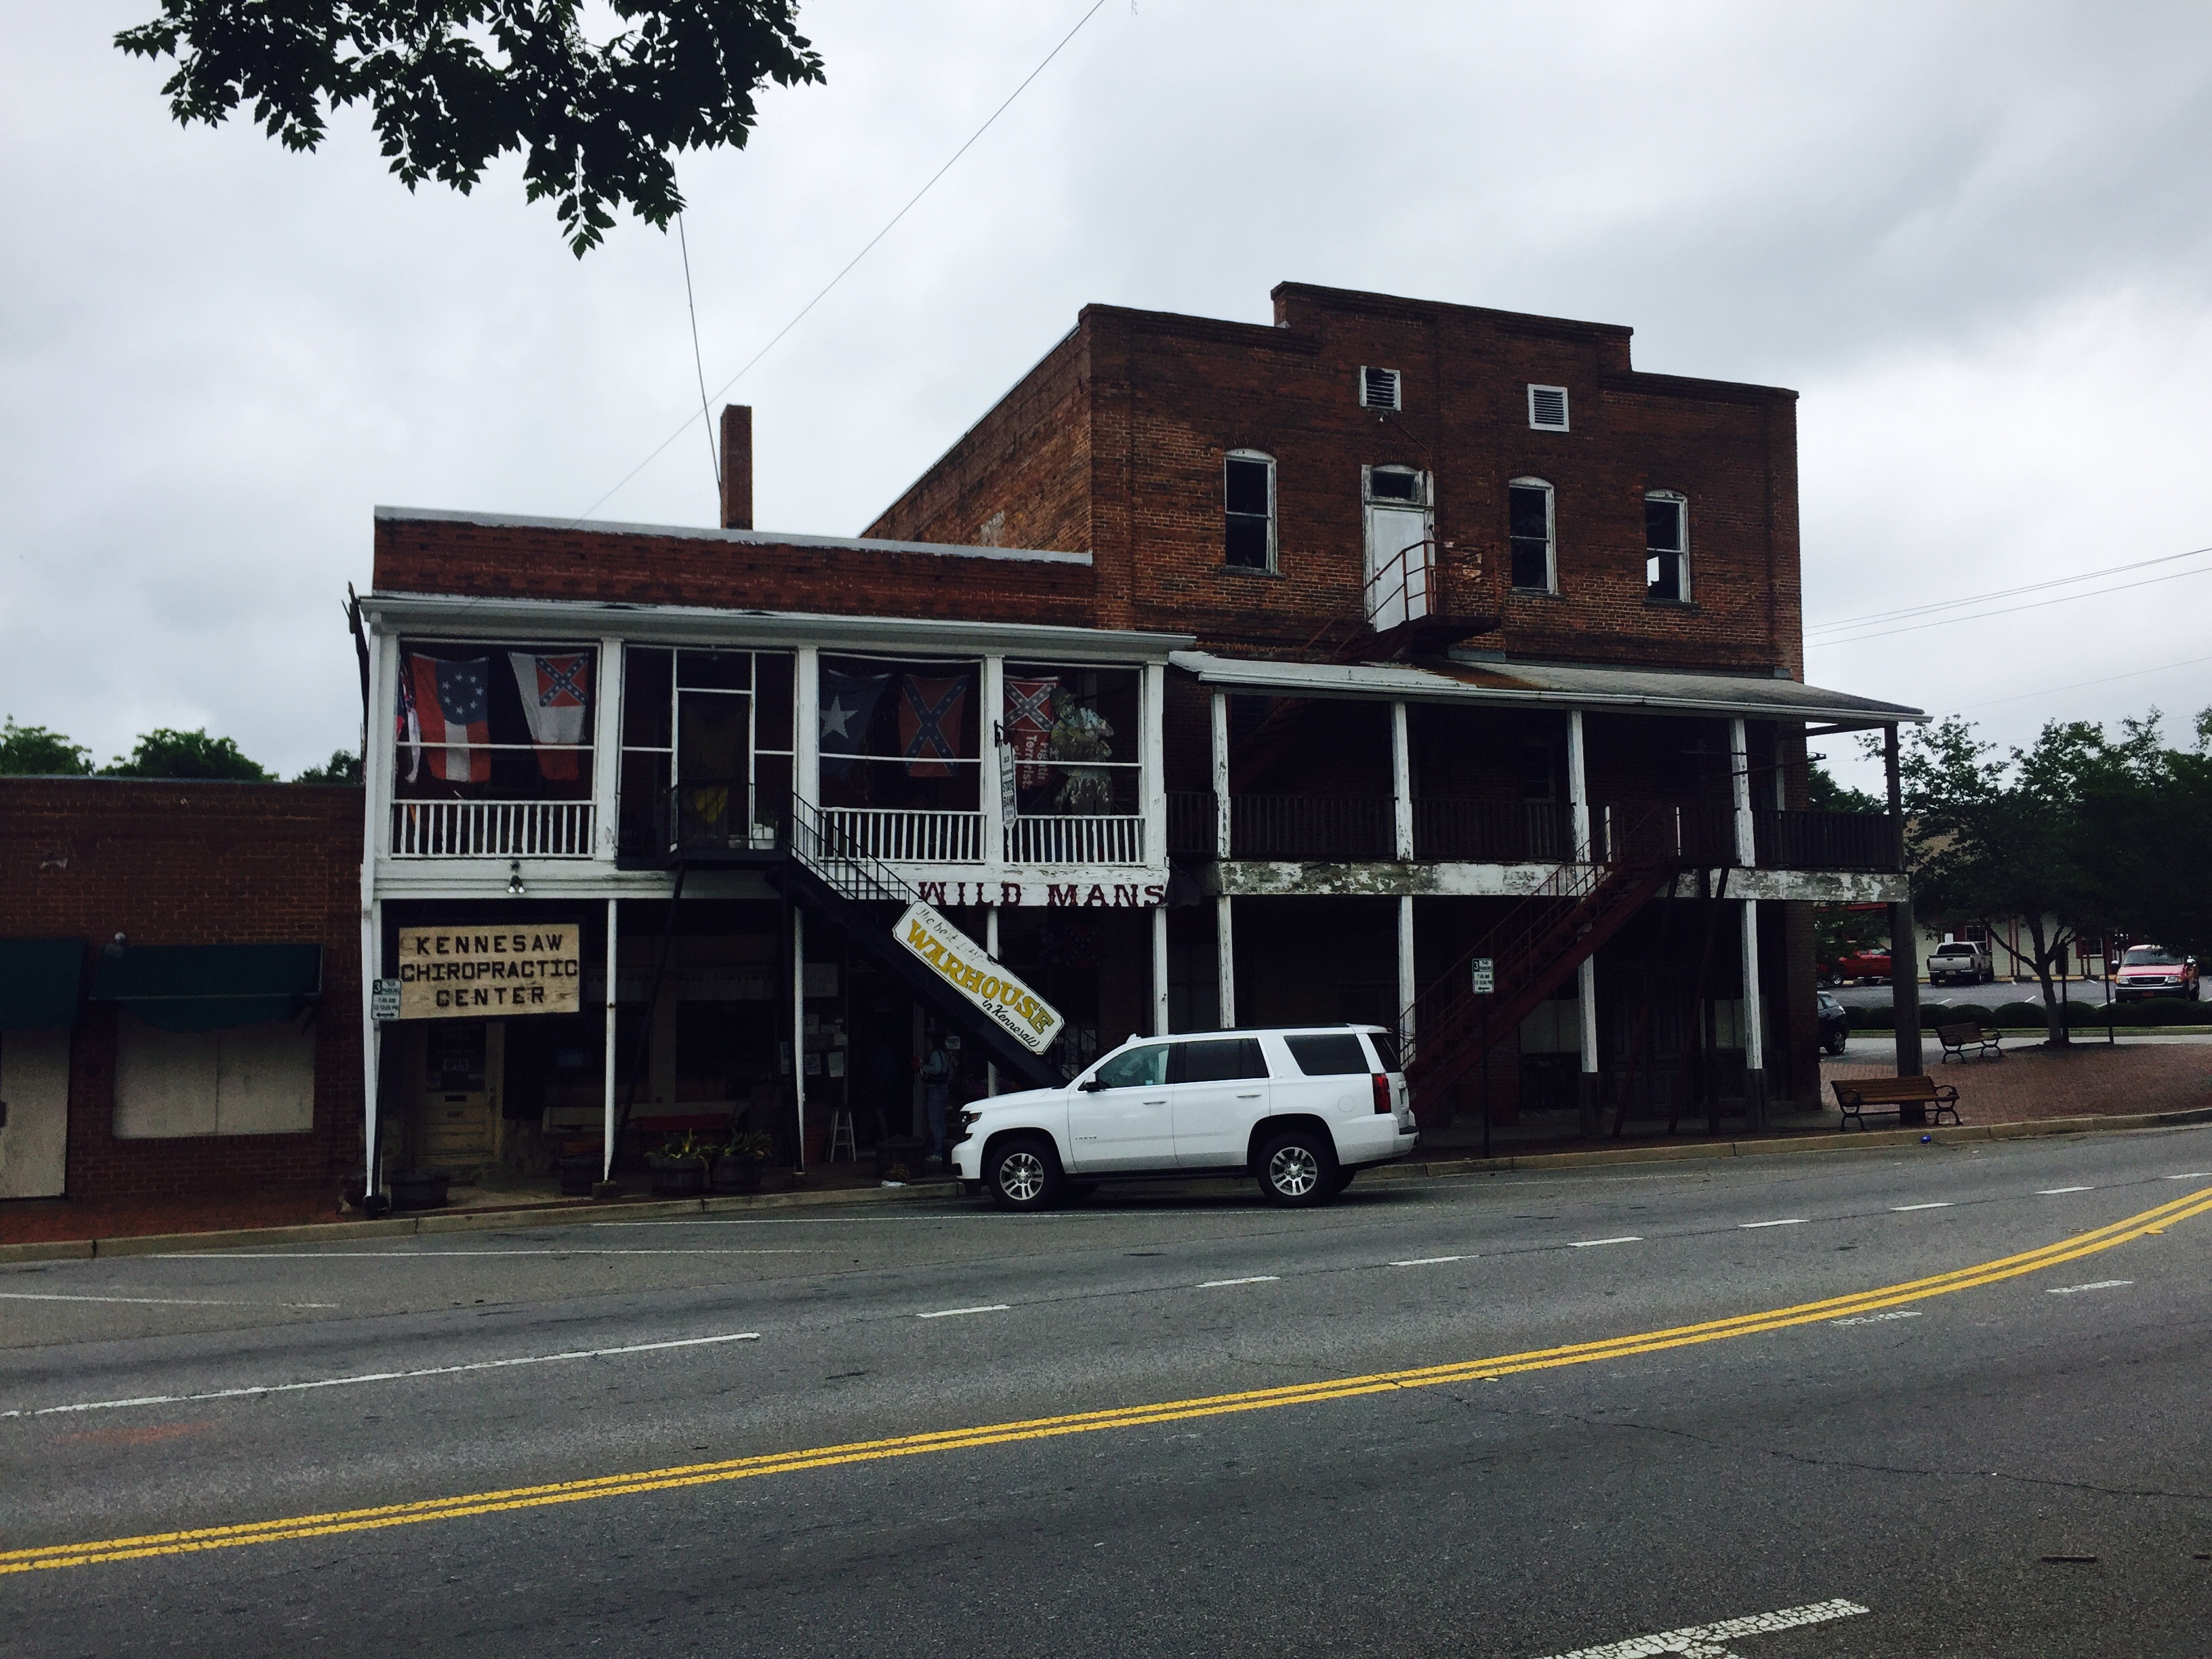 Early twentieth century buildings that were constructed between 1907 and 1908. Buildings like these provided travelers and residents a place to shop and dine.